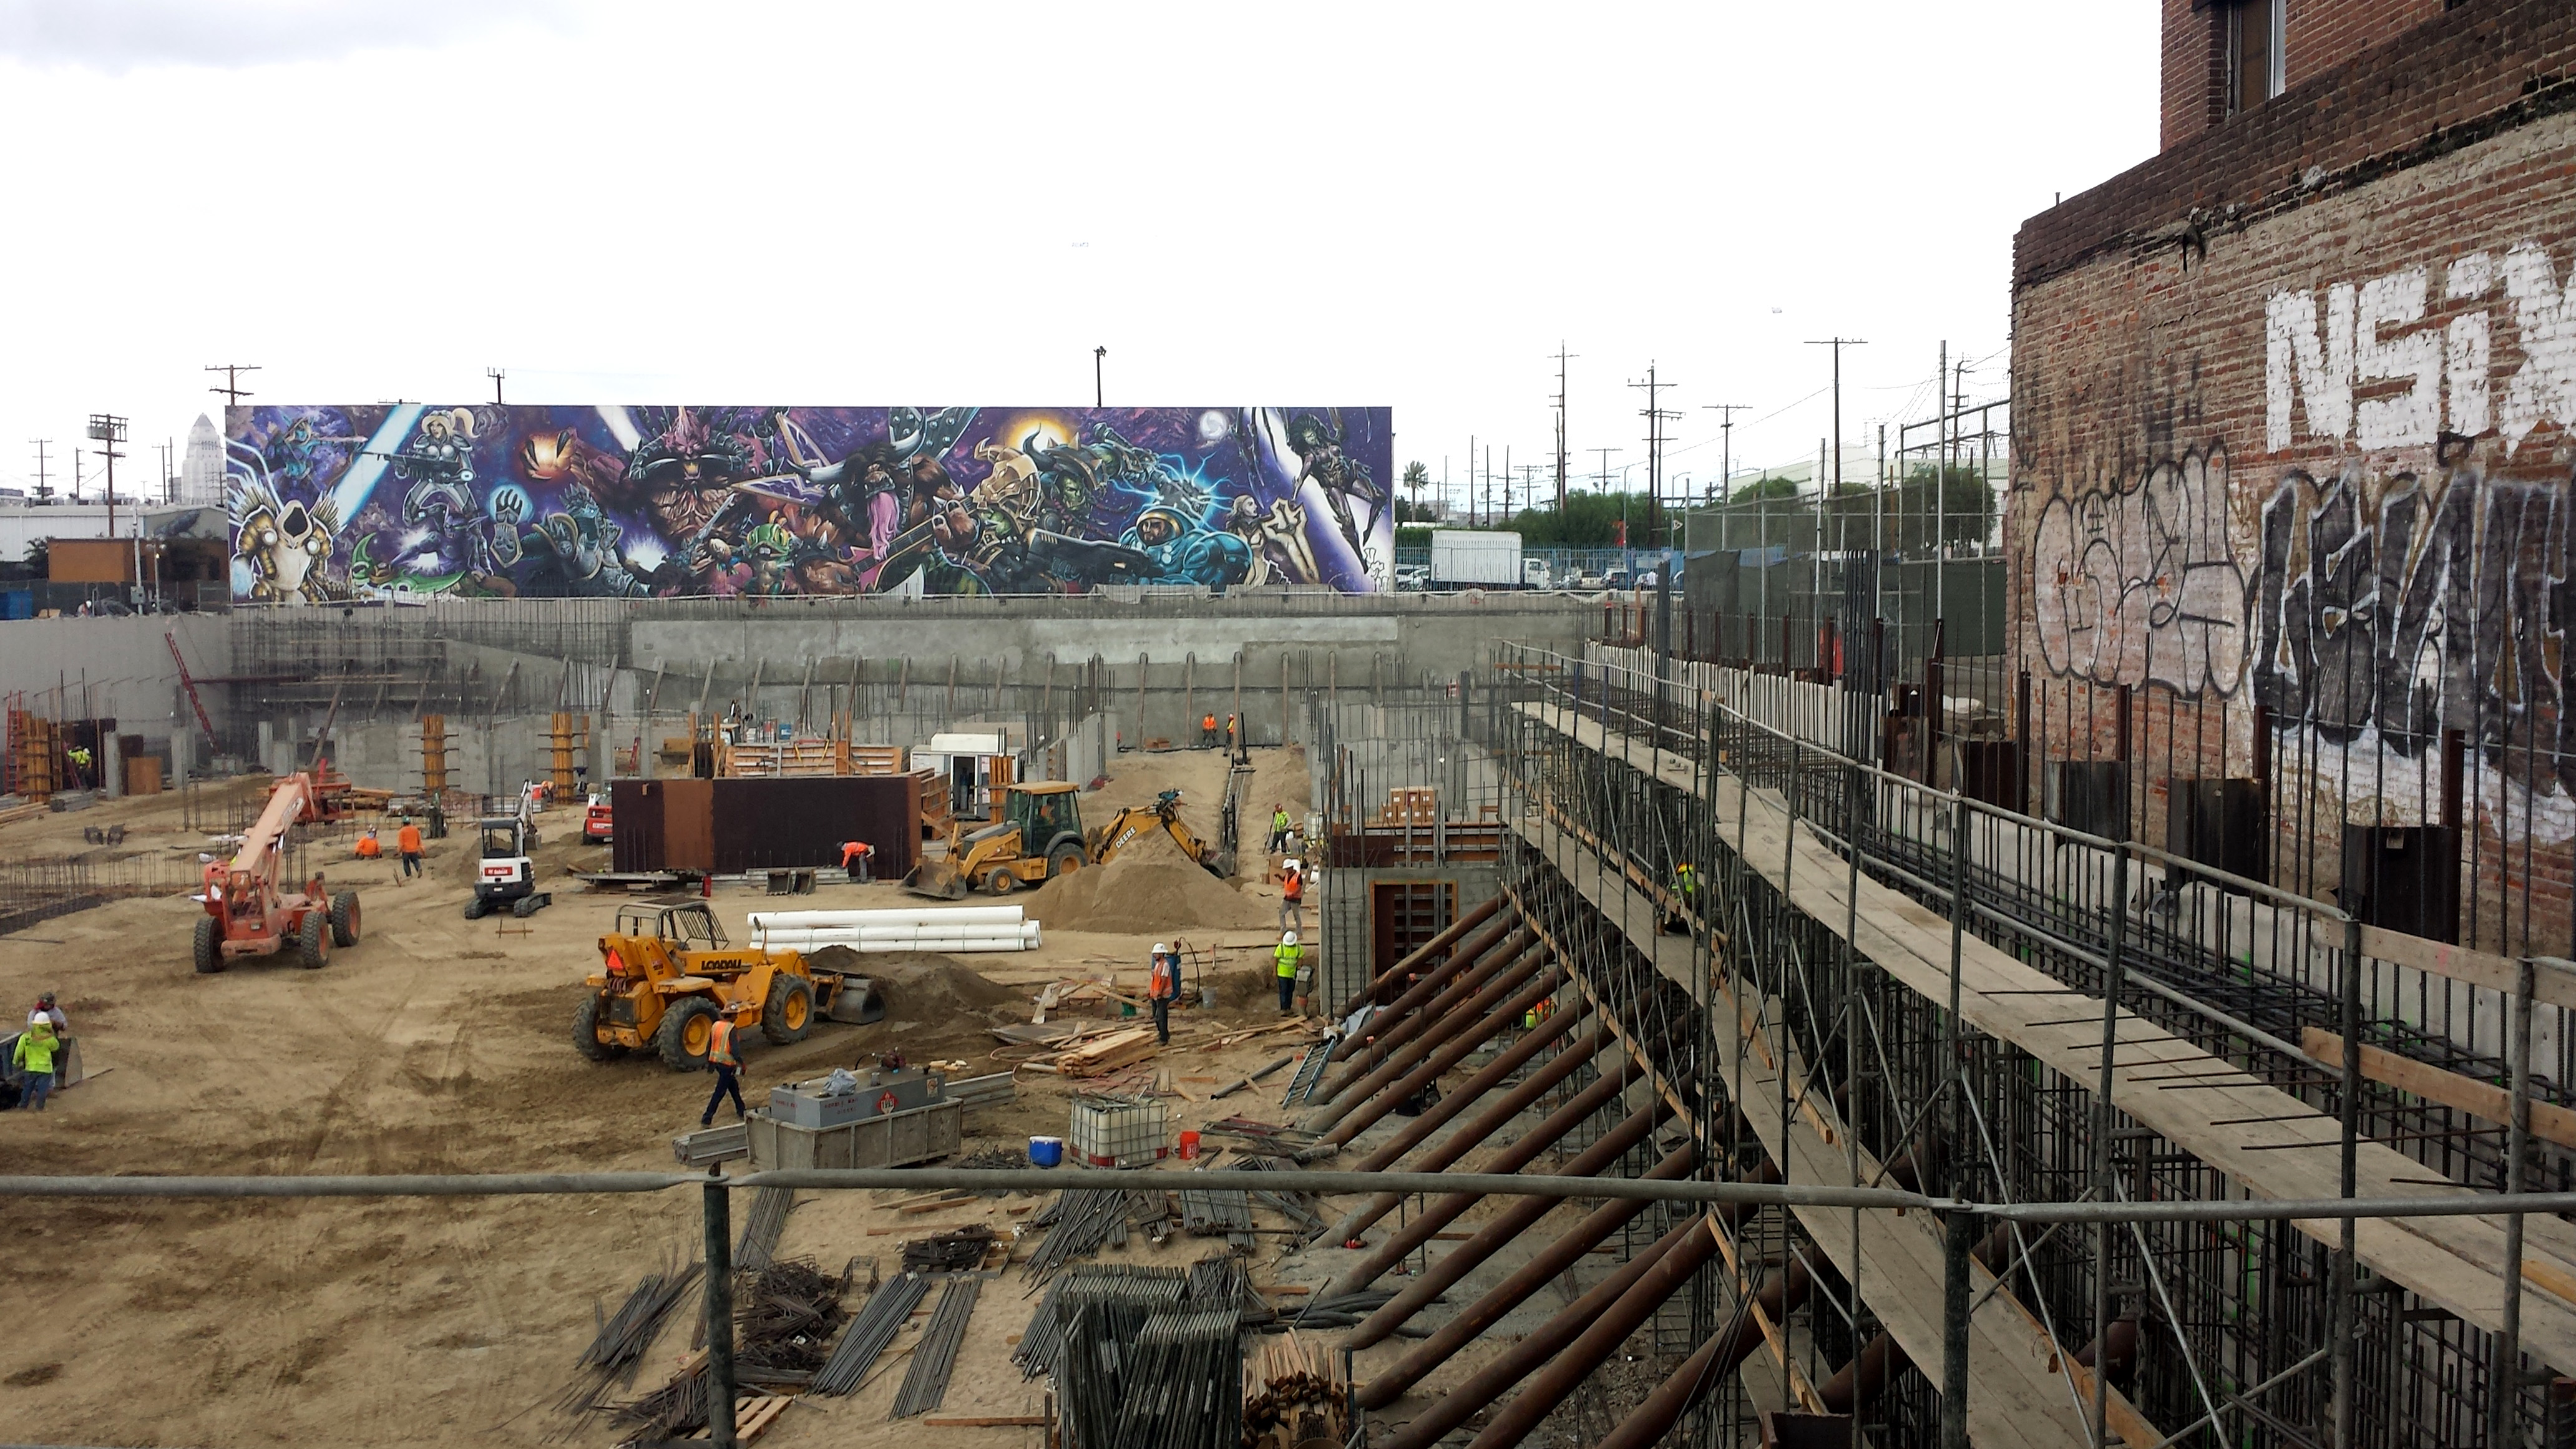 20171101_142814. Construction Zone with Mural